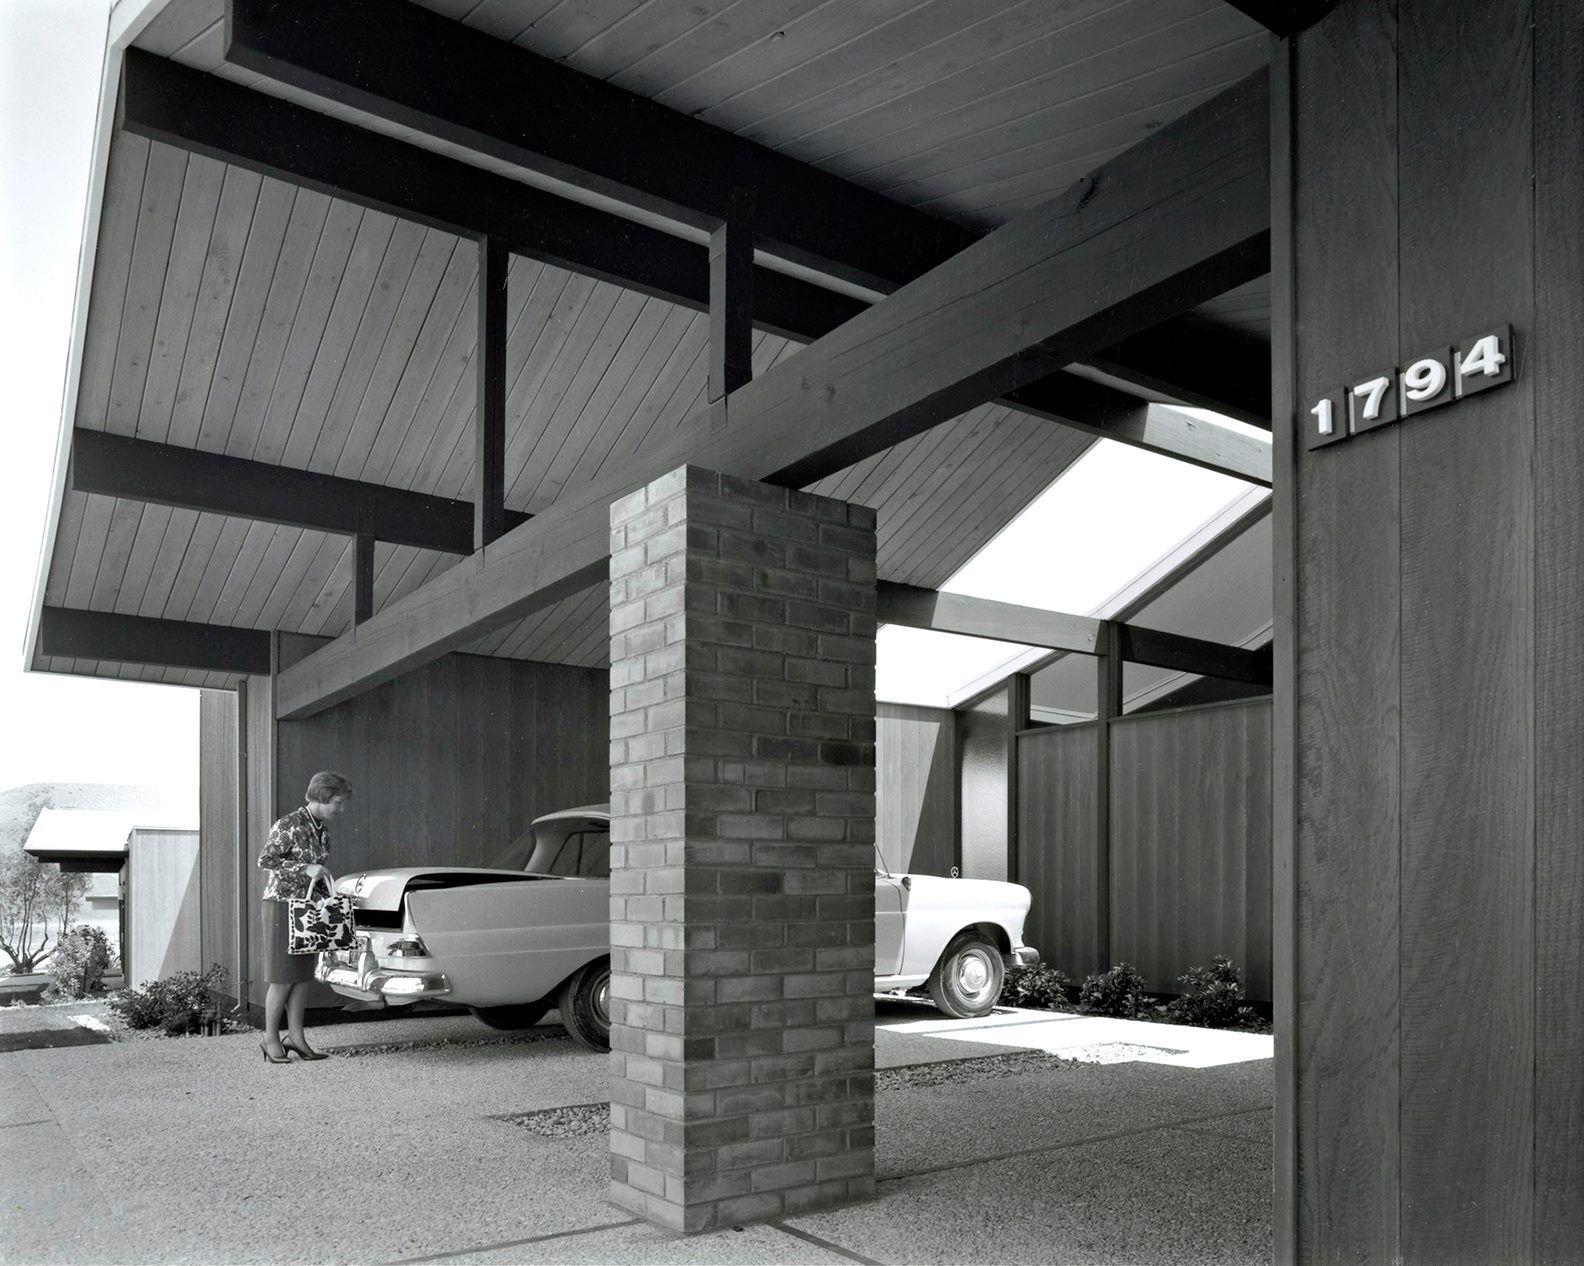 Modern homes los angeles brentwood untouched 1960 mid century modern - Beginning In The Late 1950 S Property Developer Joseph Eichler Was A Principle Advocate For Bringing Modern